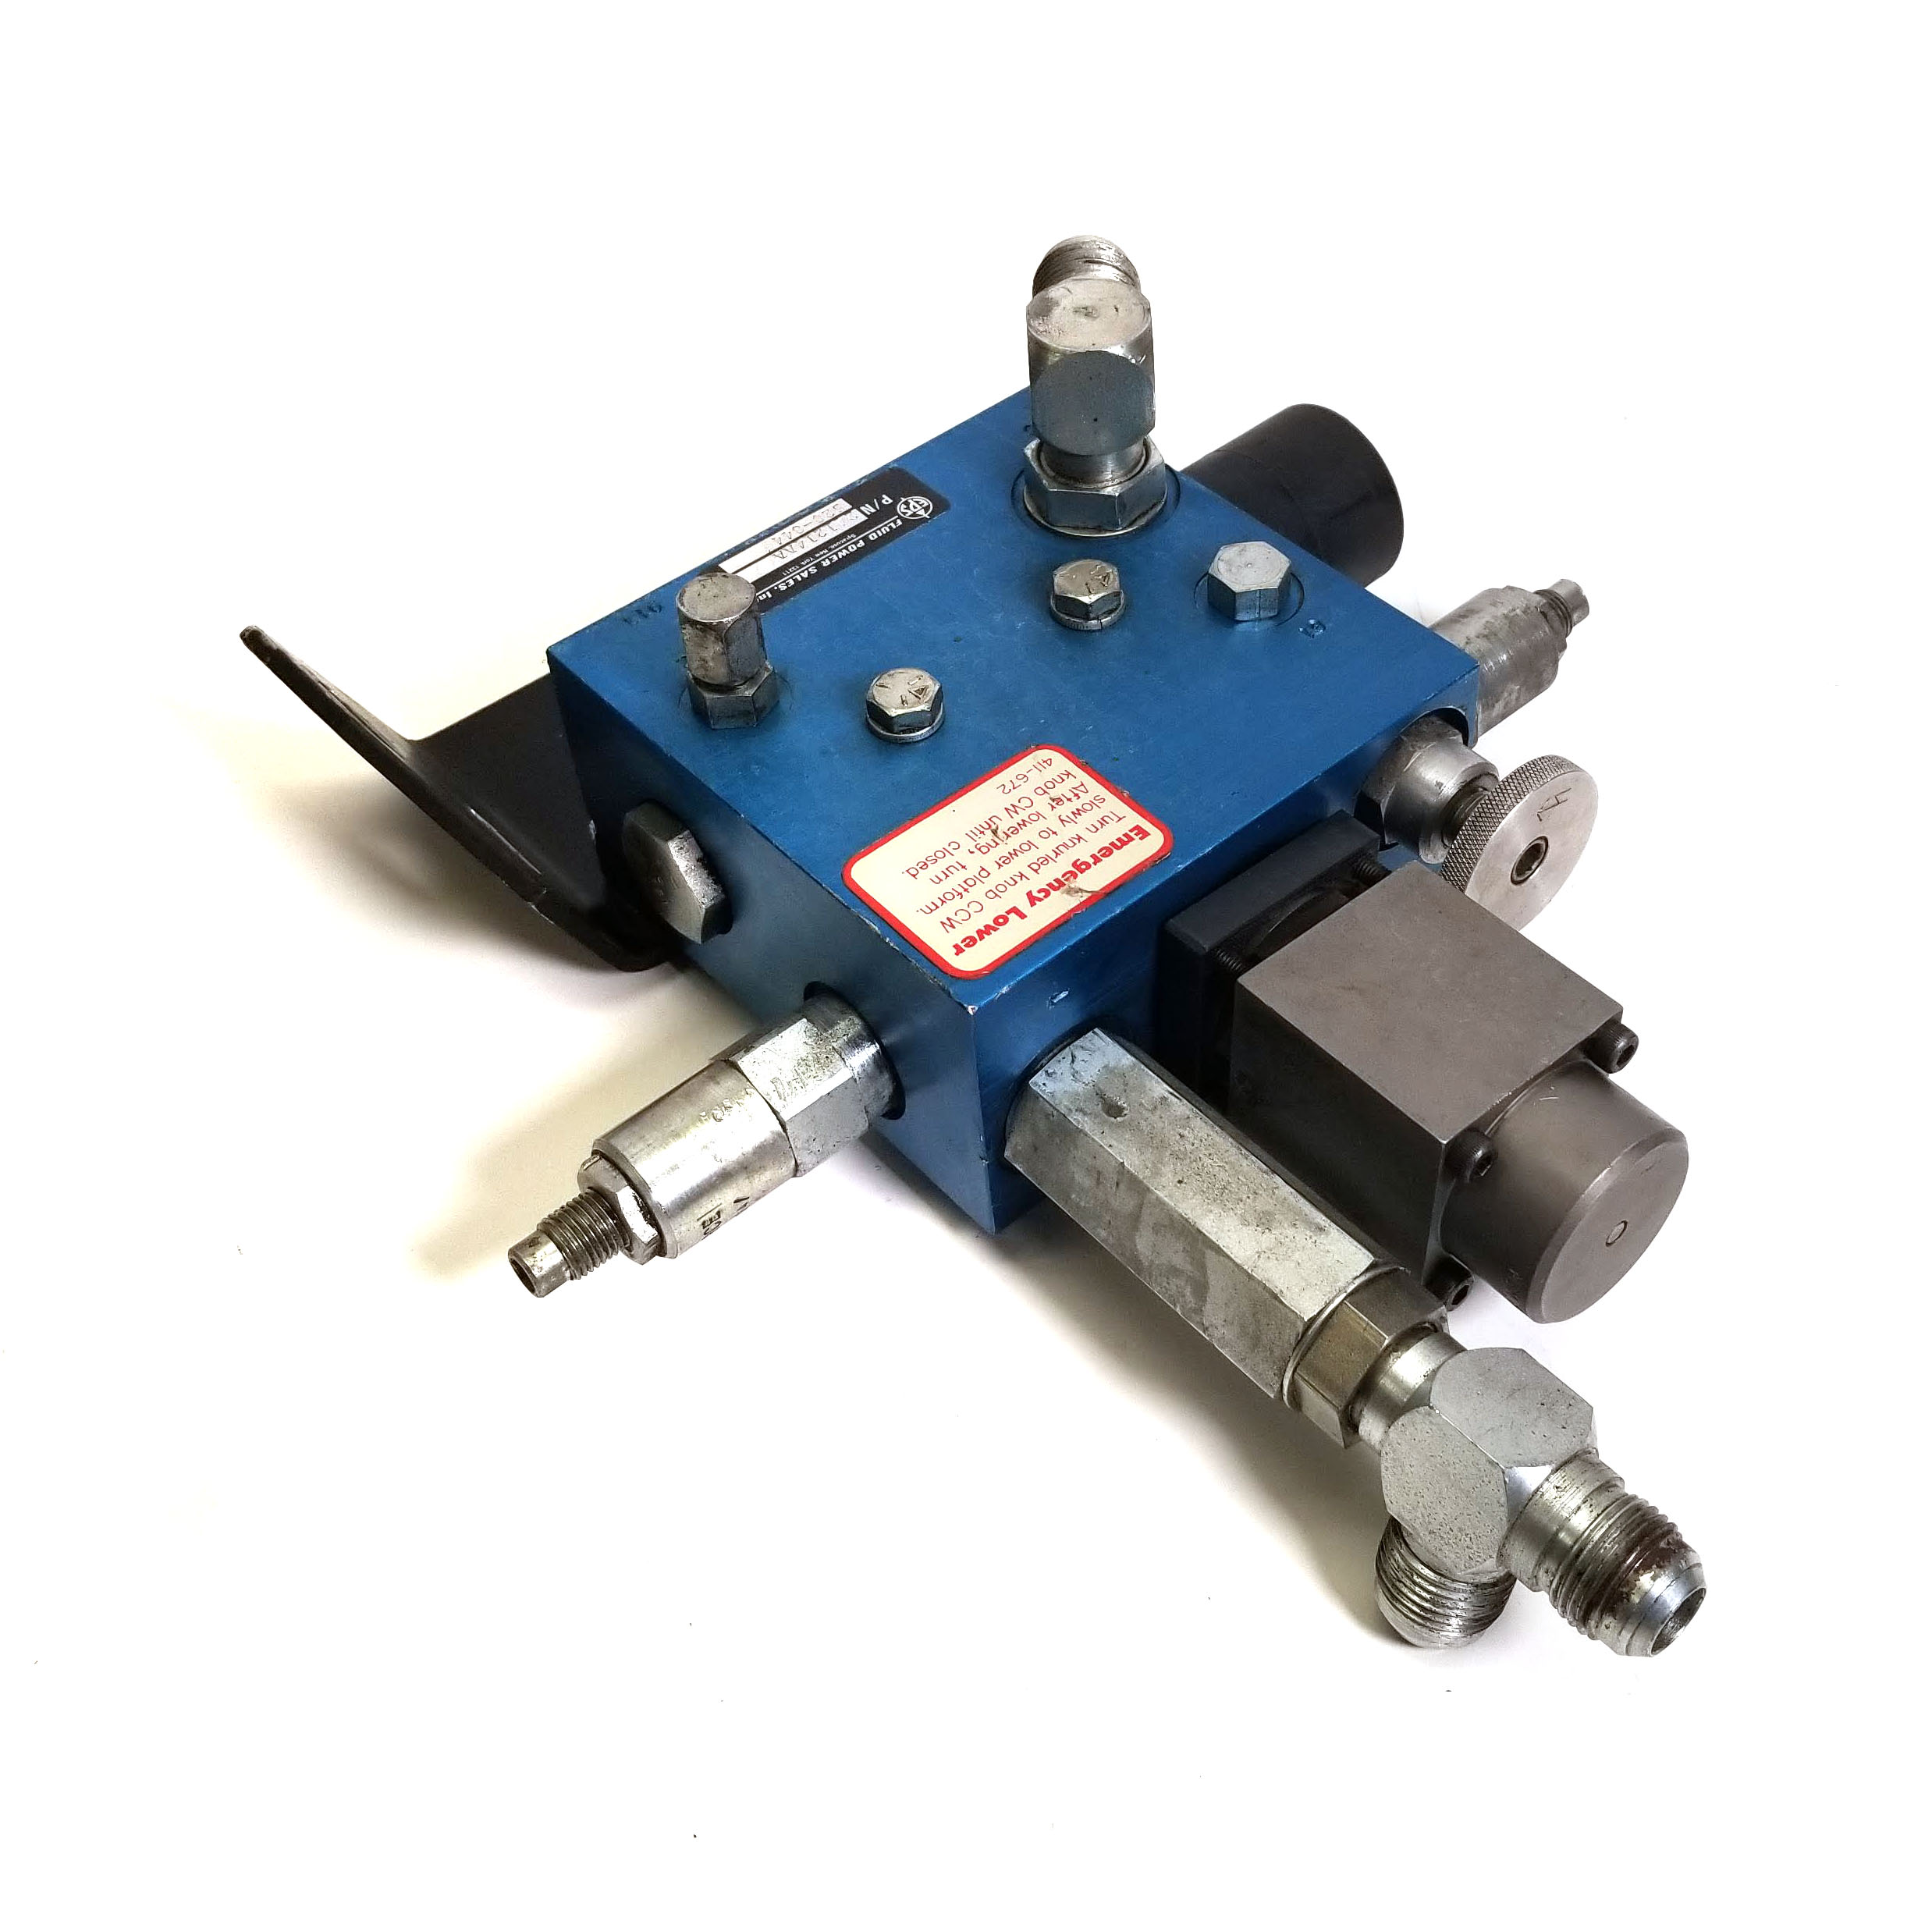 Details about Fluid Power Sales 241214AA Hydraulic Control Manifold  w/Emergency Lower Valve